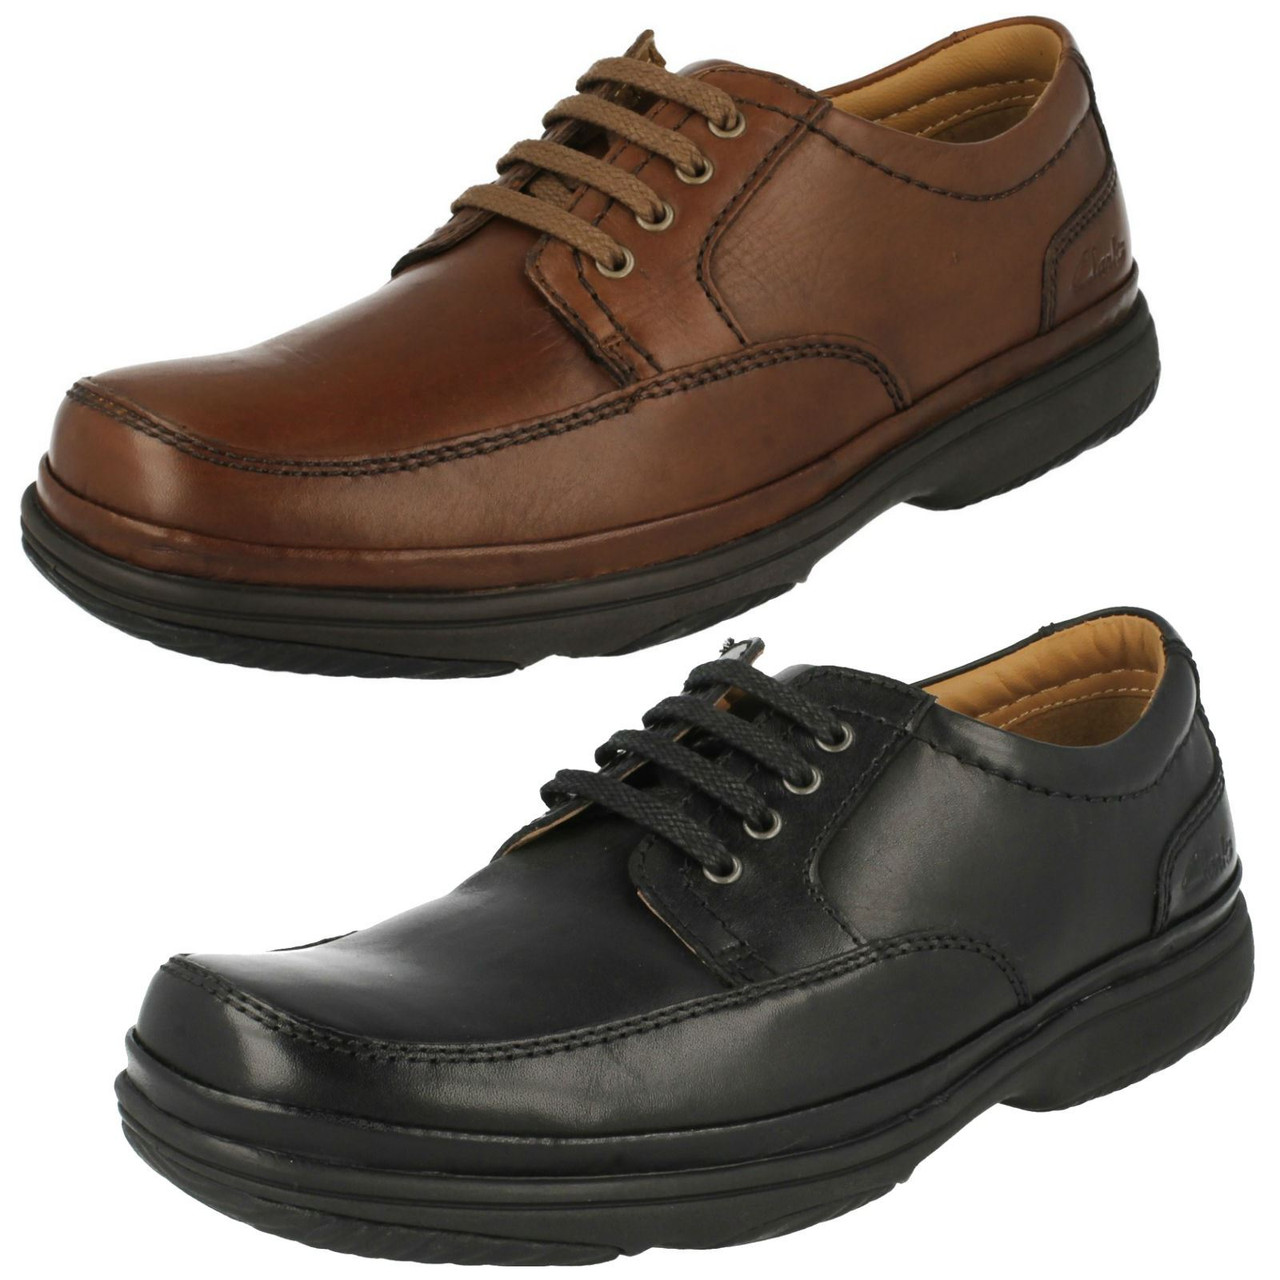 Mens Clarks Flexlight Wide Fitting Lace